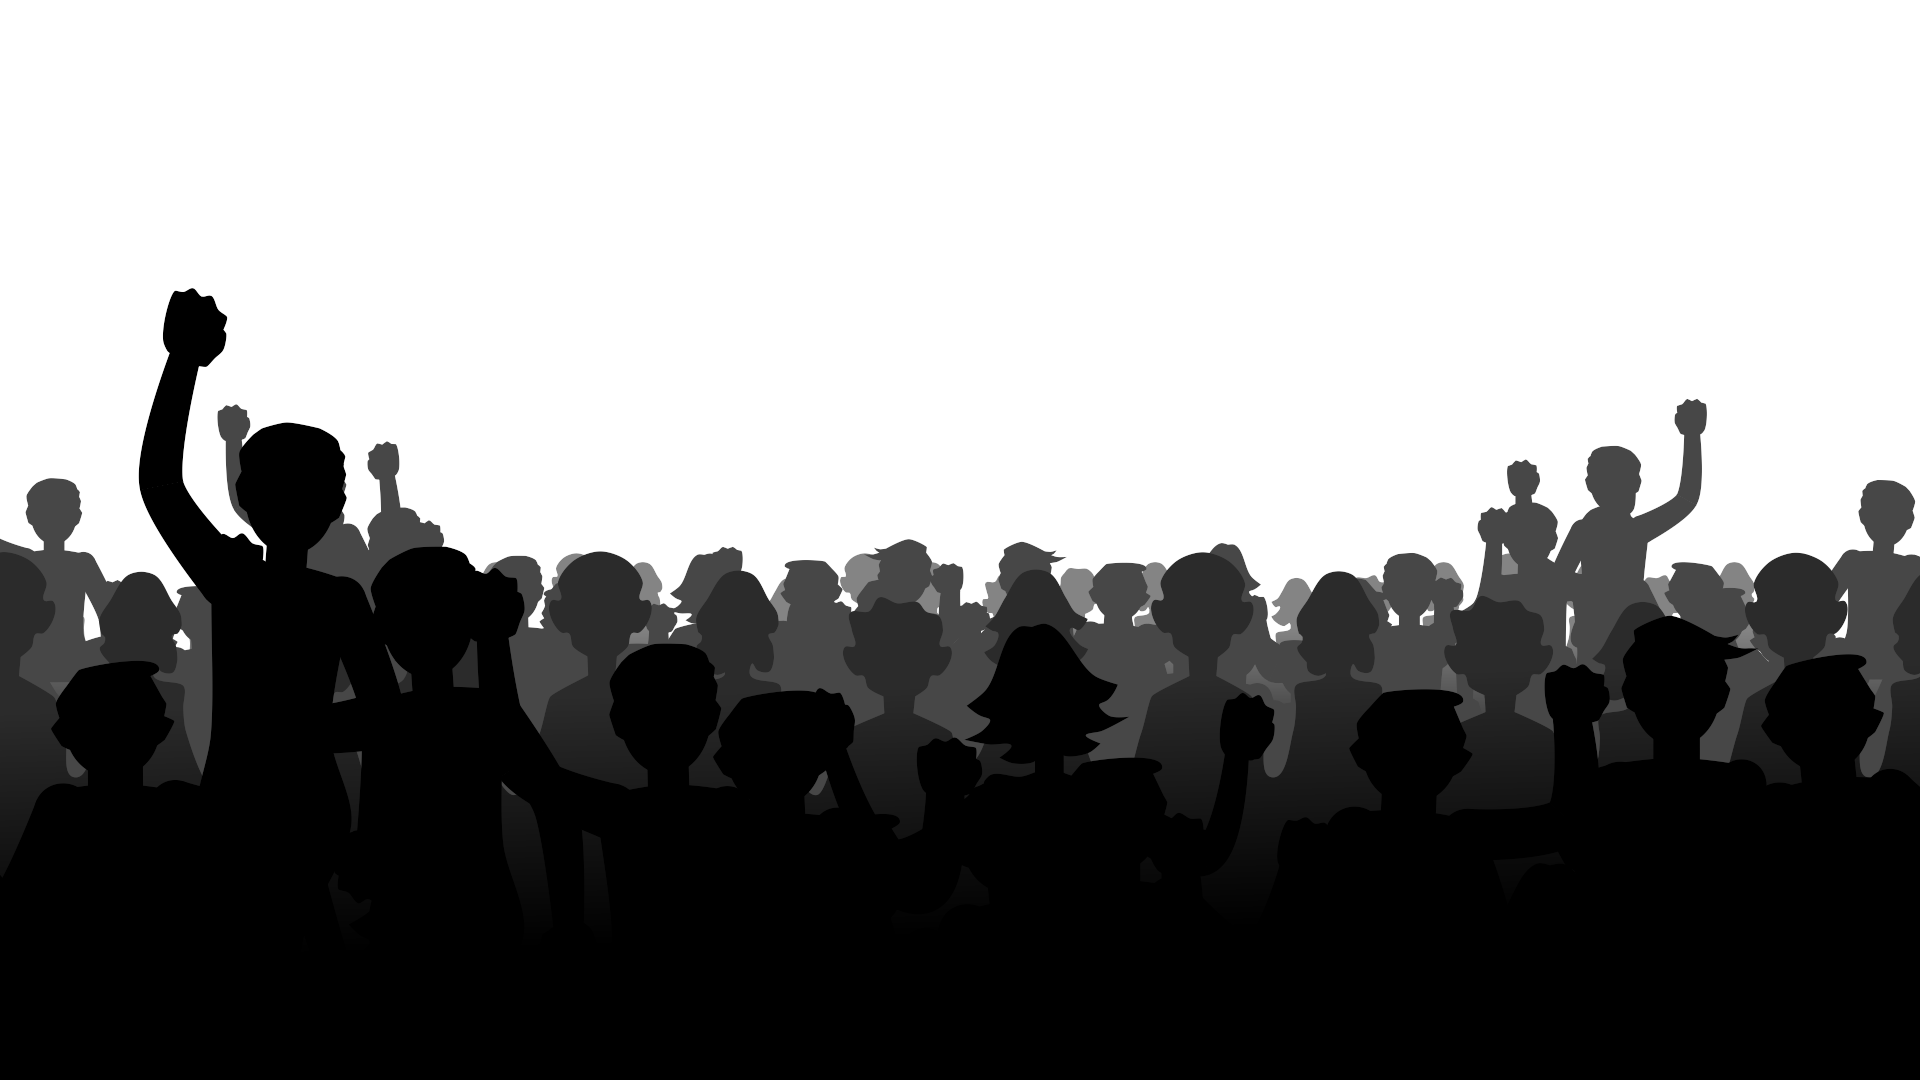 Download Free png Crowd of people download free clipart with.